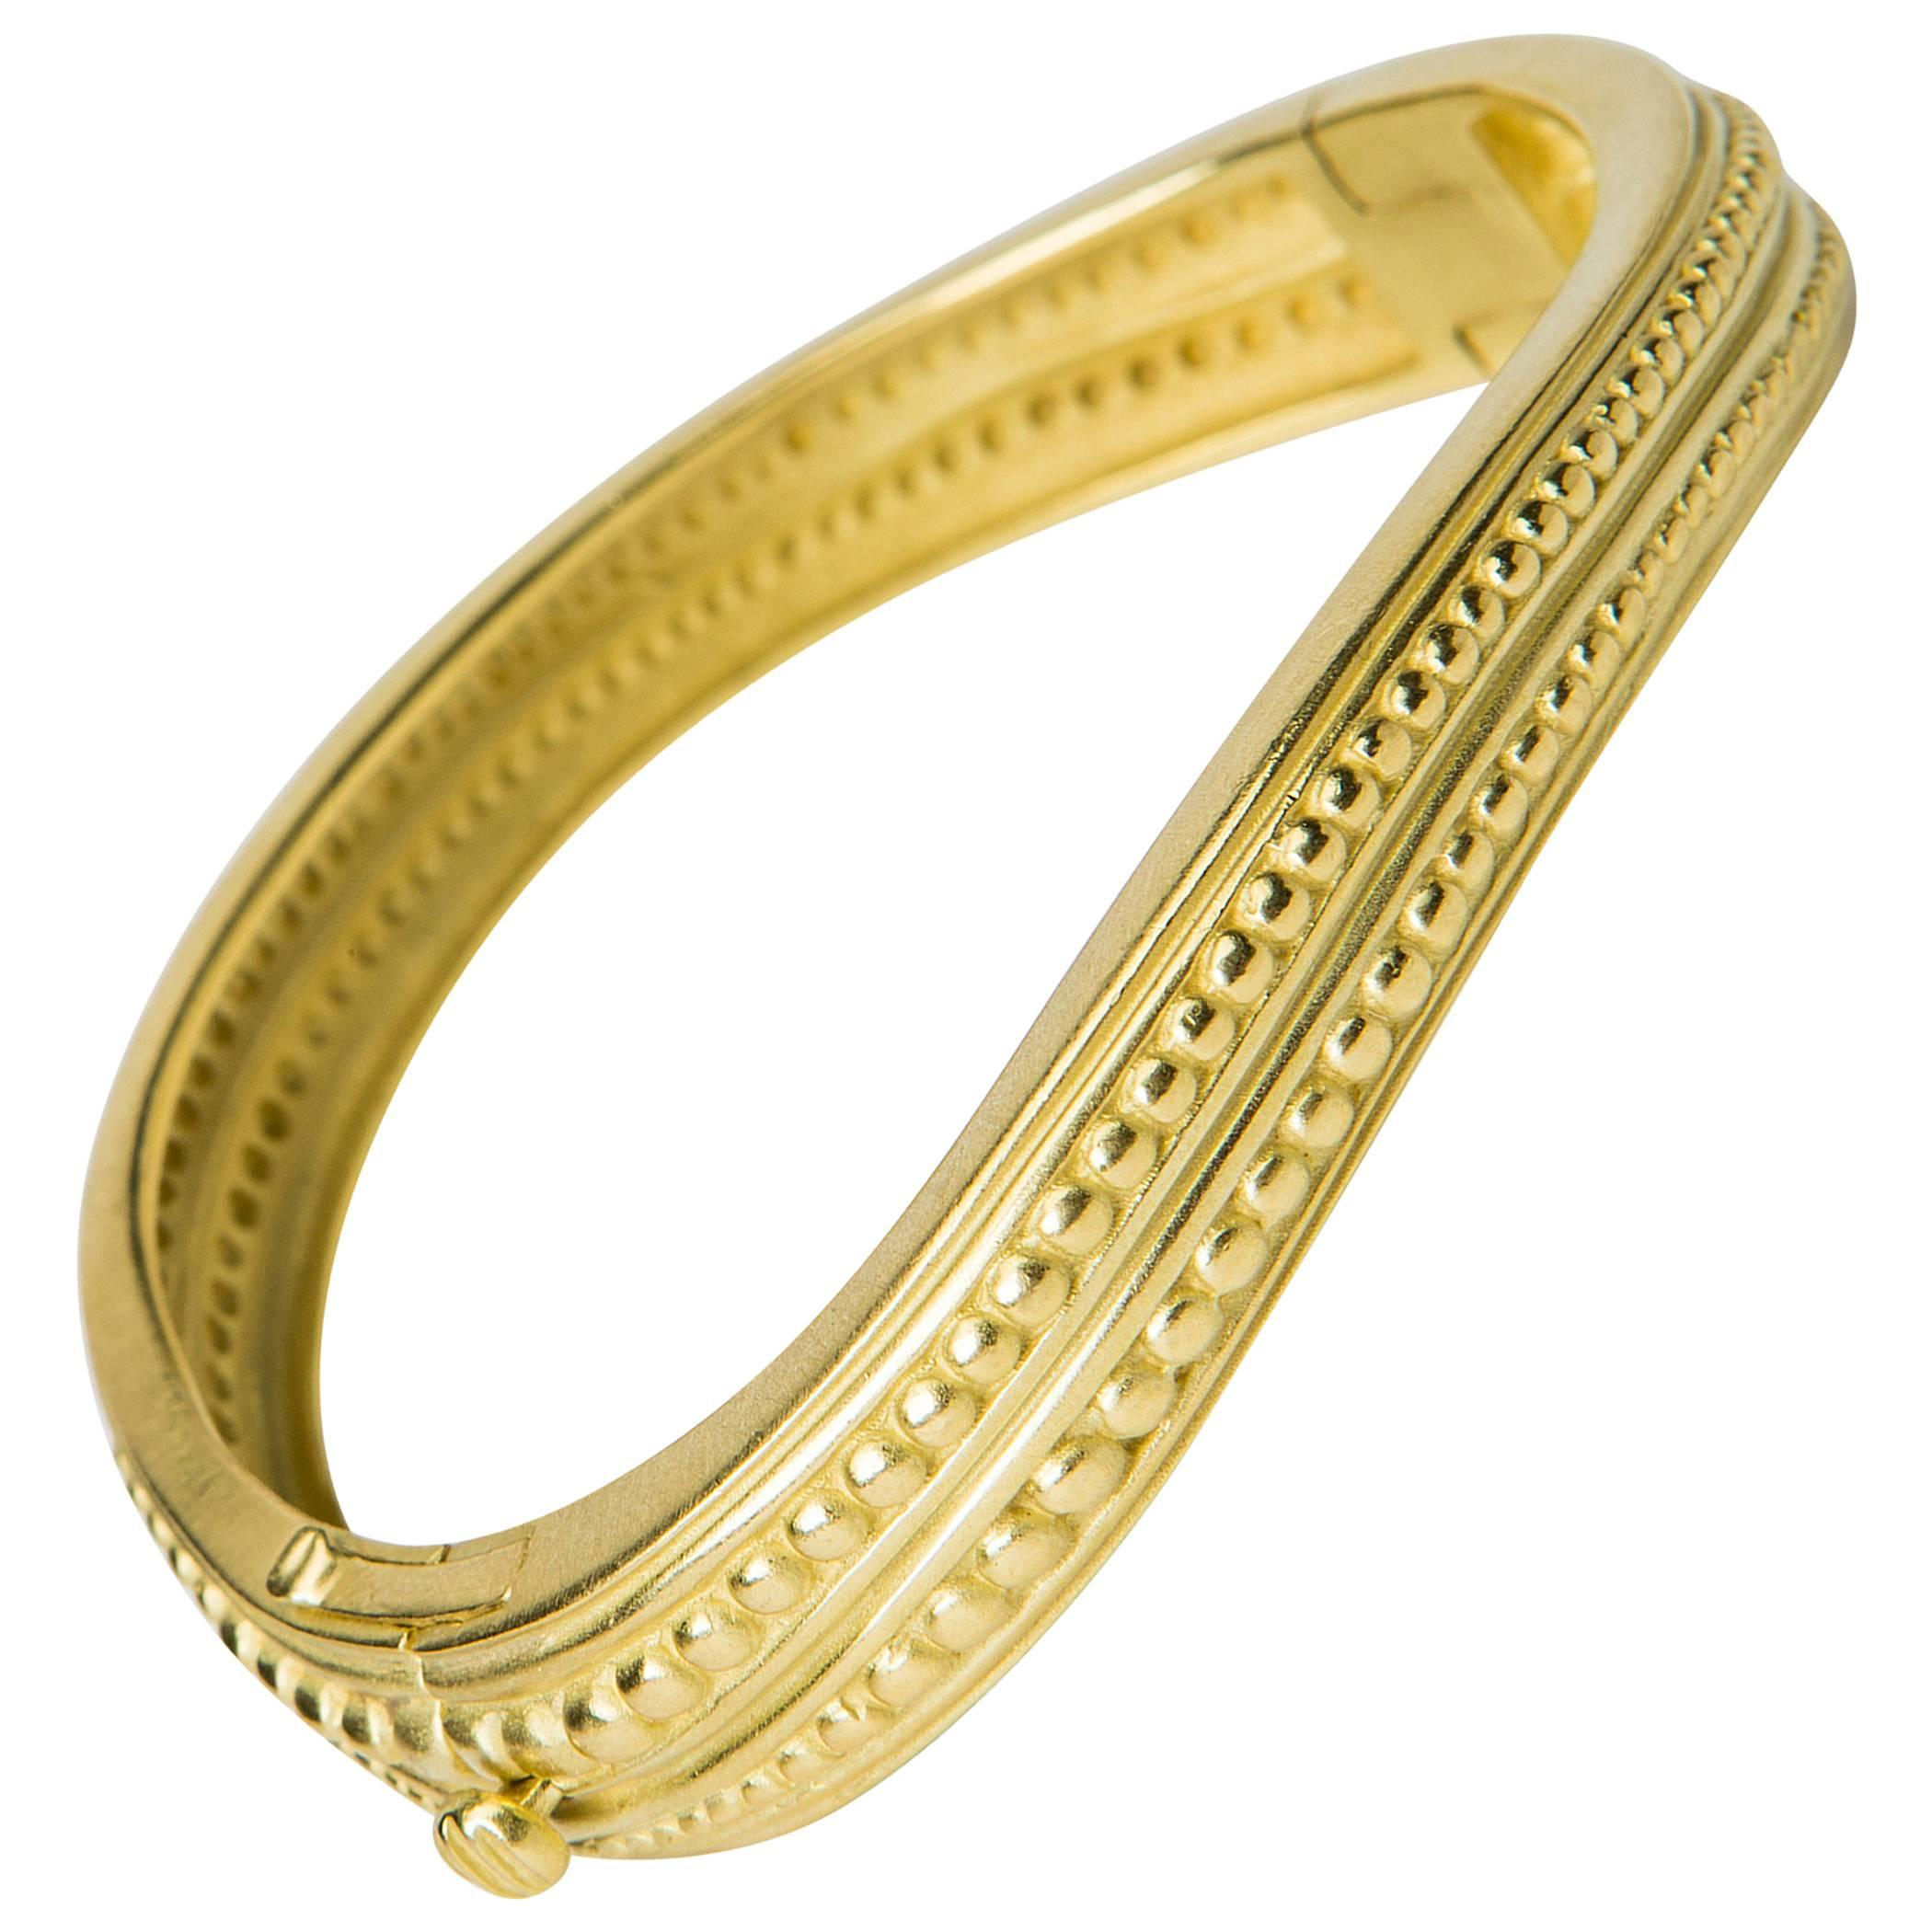 rose mizana gold jewelry collections products bangle diamond nail bangles single